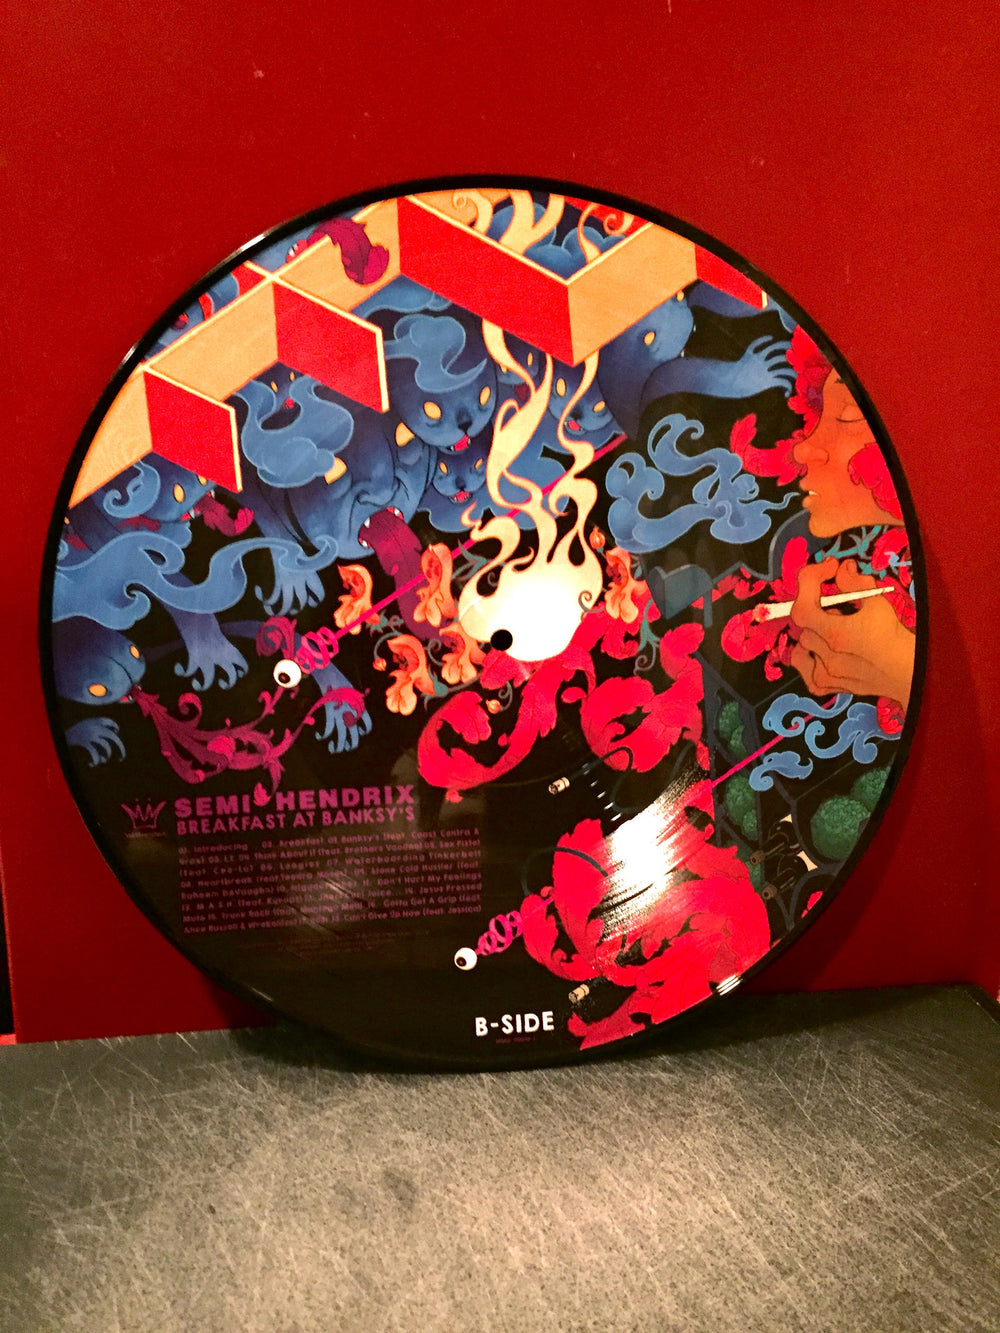 Semi Hendrix (Ras Kass & Jack Splash) - Breakfast At Banksy's (Picture Disc 2xLP)